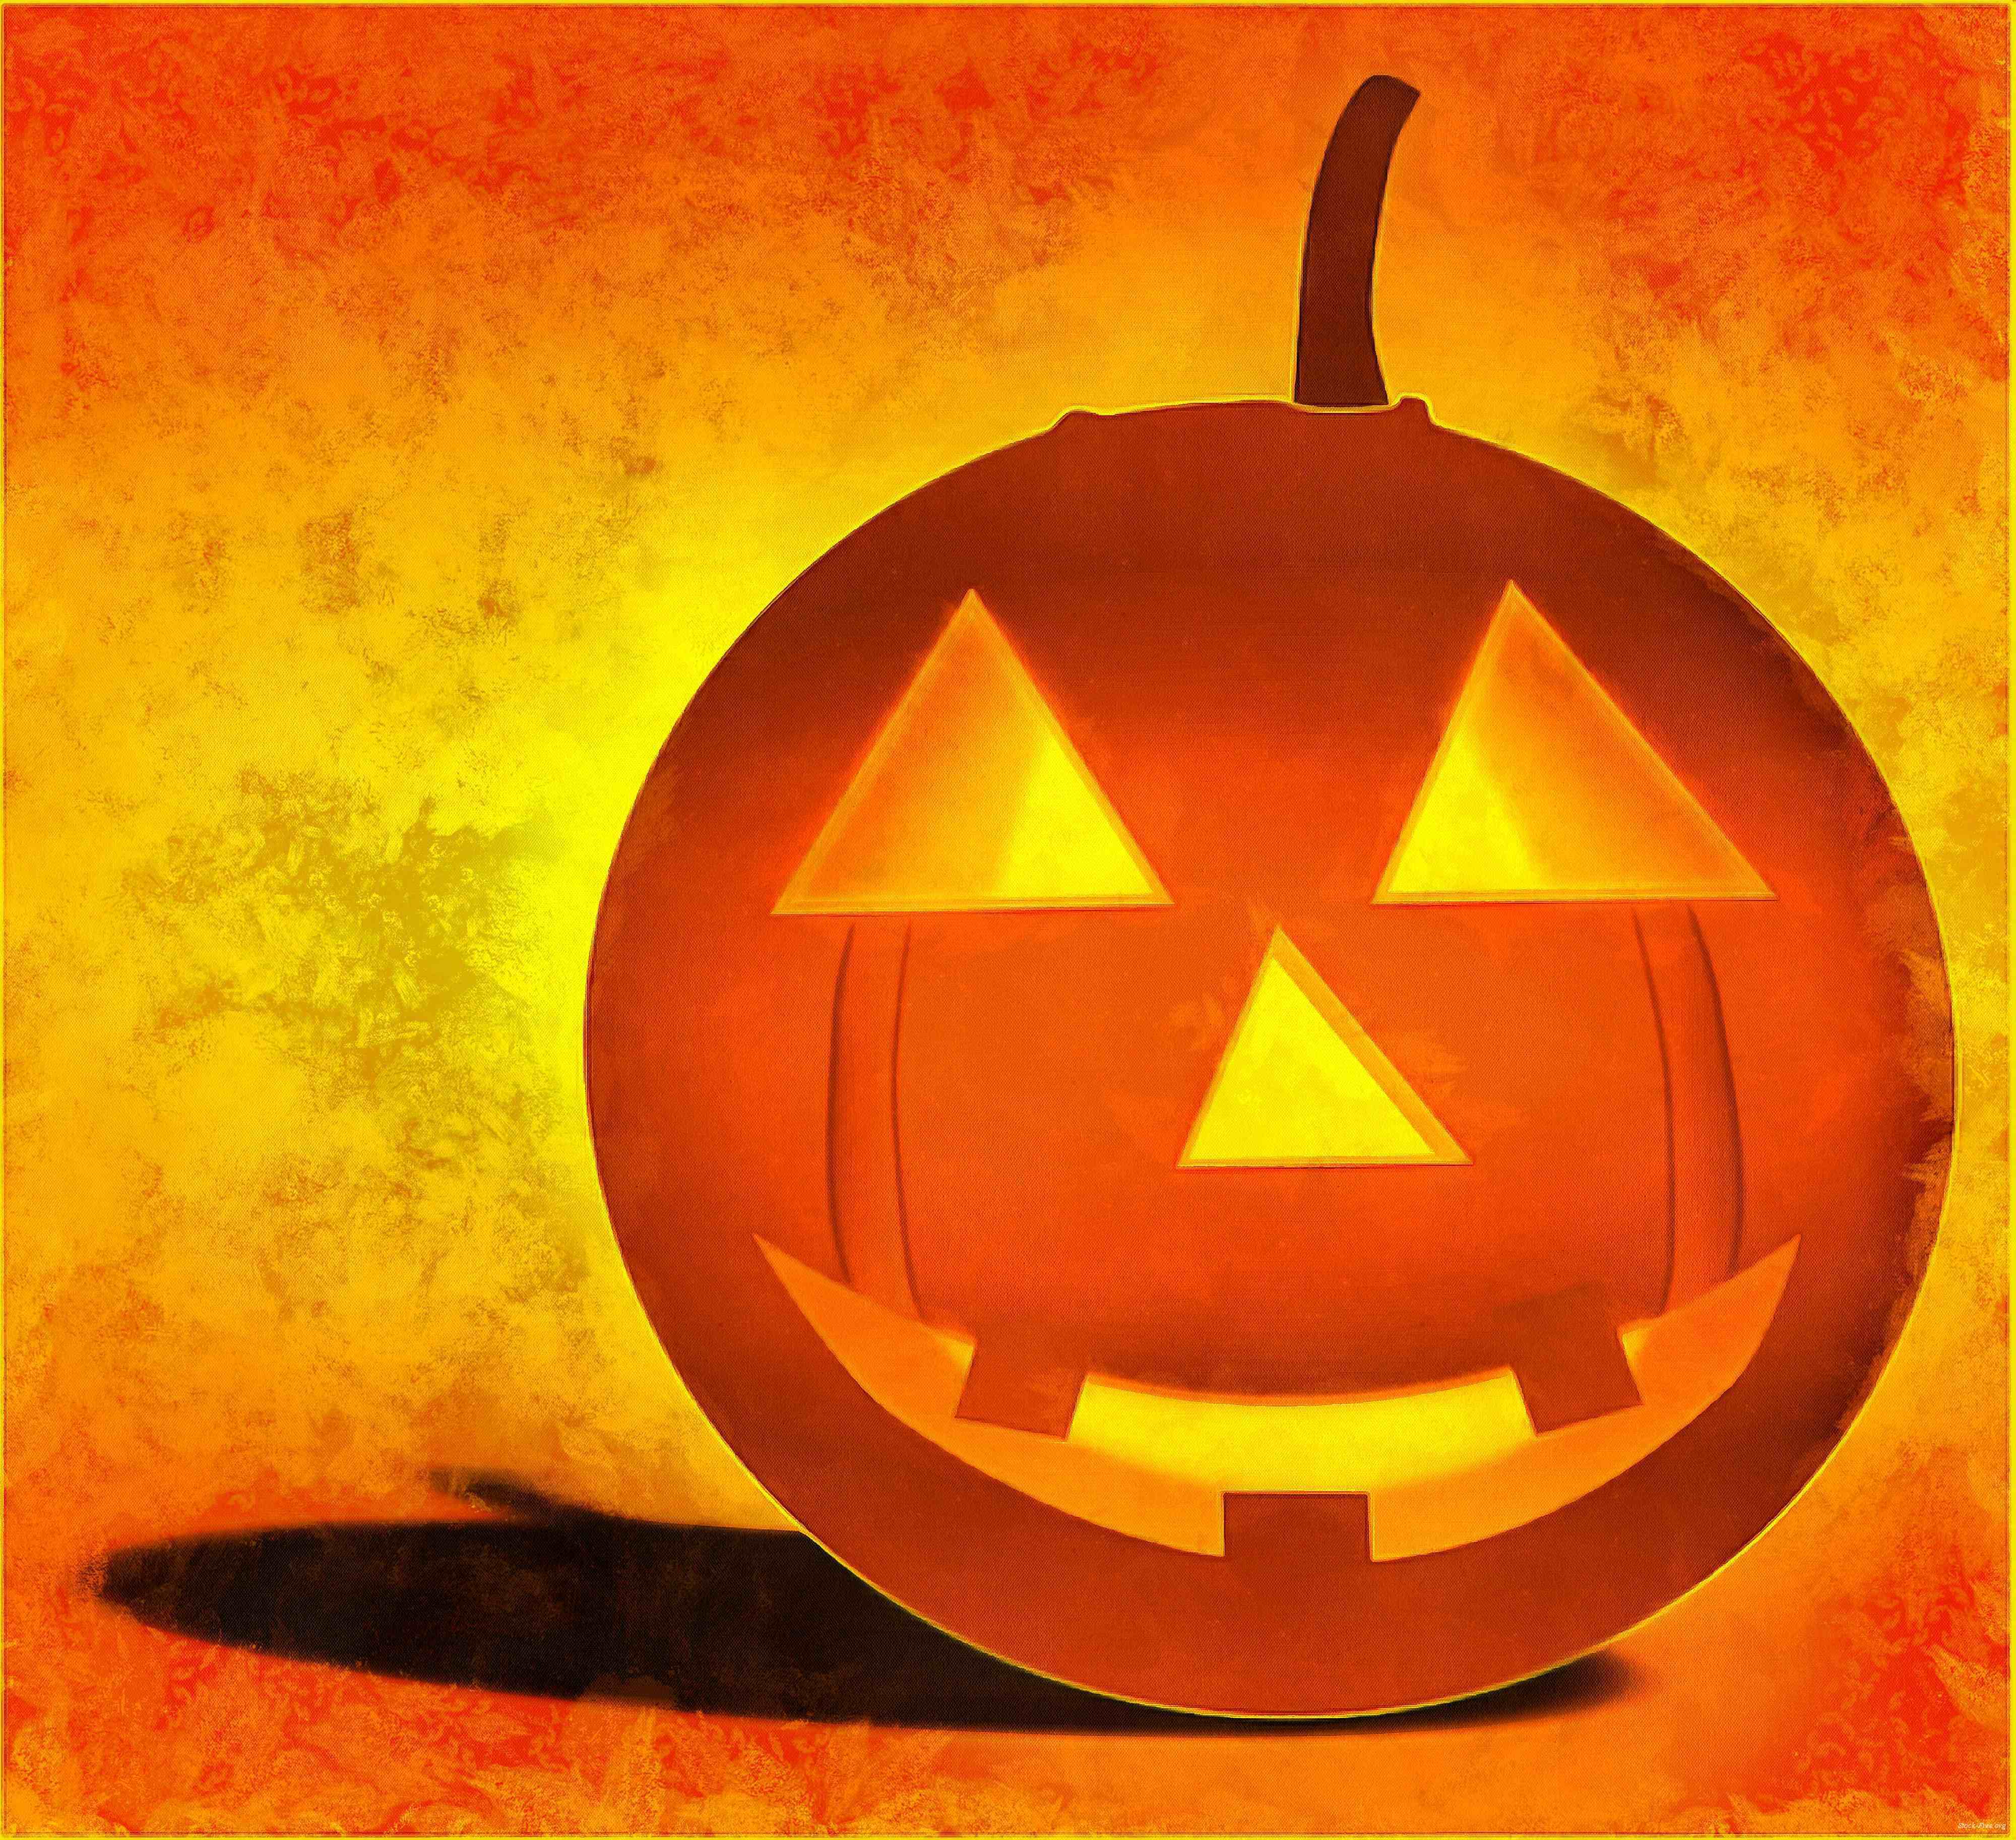 pumpkin, head, vegetable, flame, holiday, candle, celebration,  - halloween, free photos, freeimages, free stock images, public domain images, download free images, stock free images